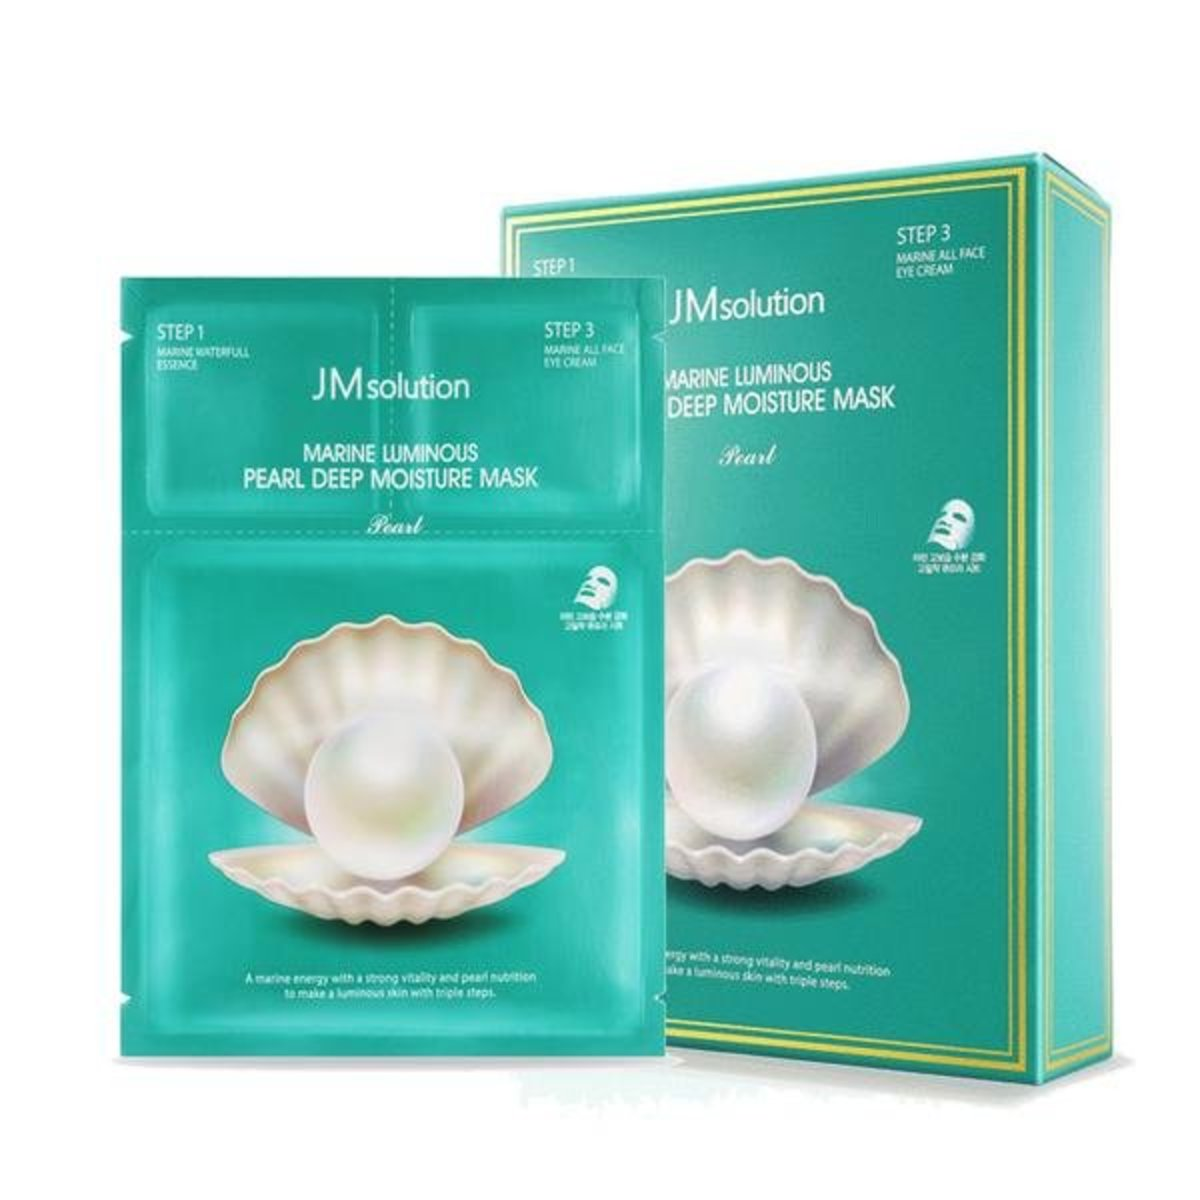 Marine Luminous Pearl Deep Moisture 3 Step Mask 10pcs